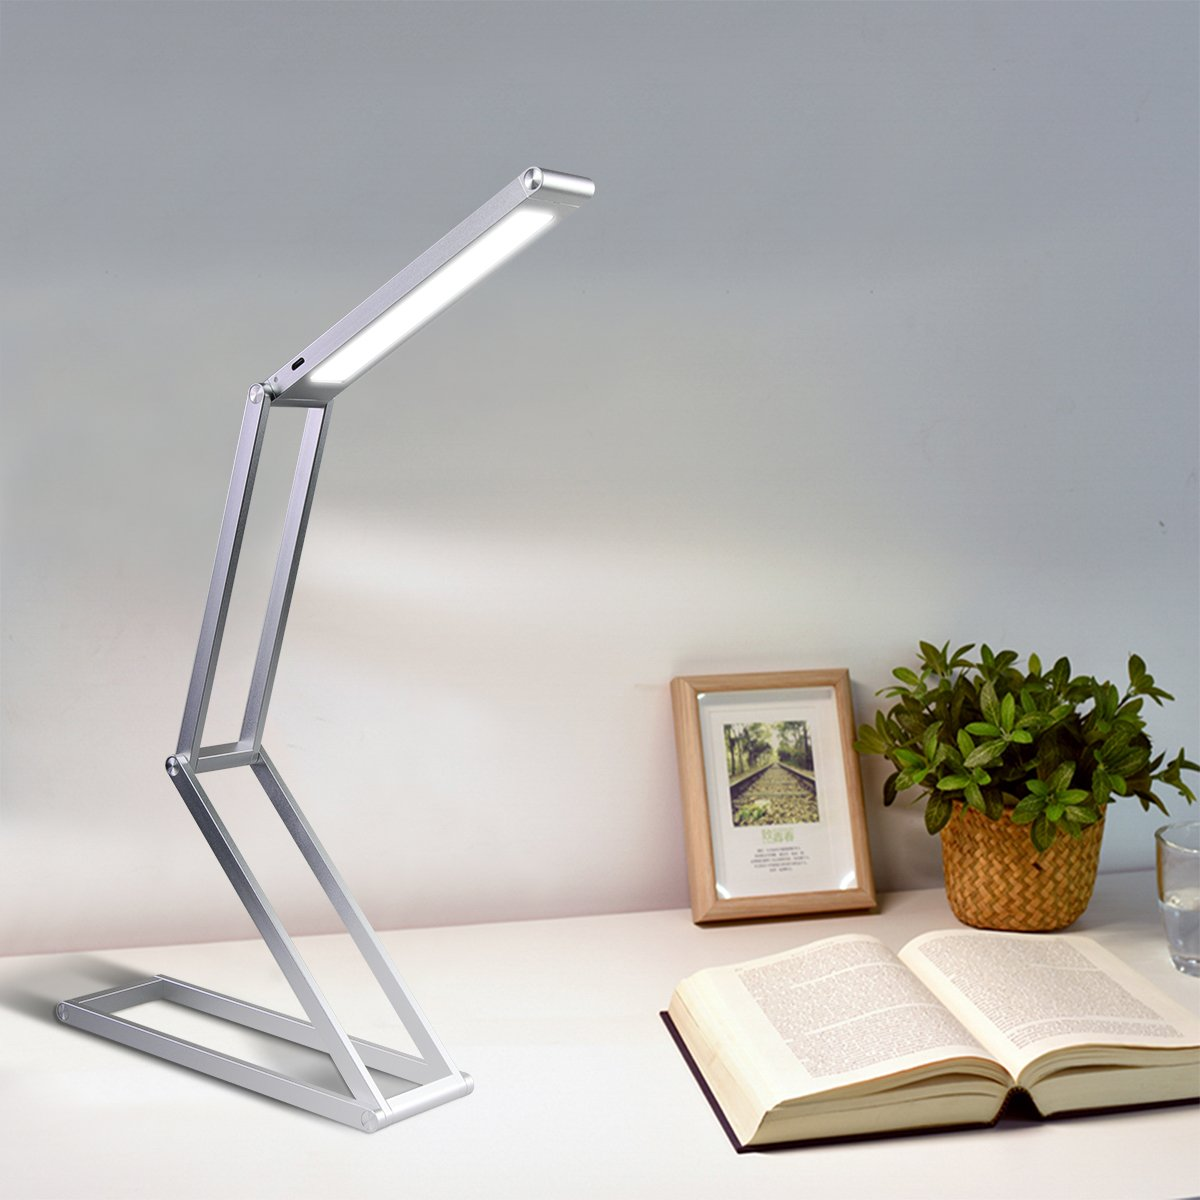 Elzo Rechargeable LED Desk Lamp, Portable Dimmable Table Lamp, USB Charging Port, 2 Brightness Levels, Aluminum Alloy Folding Lamp with Wall Mount for Reading Studying Working Camping (Silver) by ELZO (Image #2)